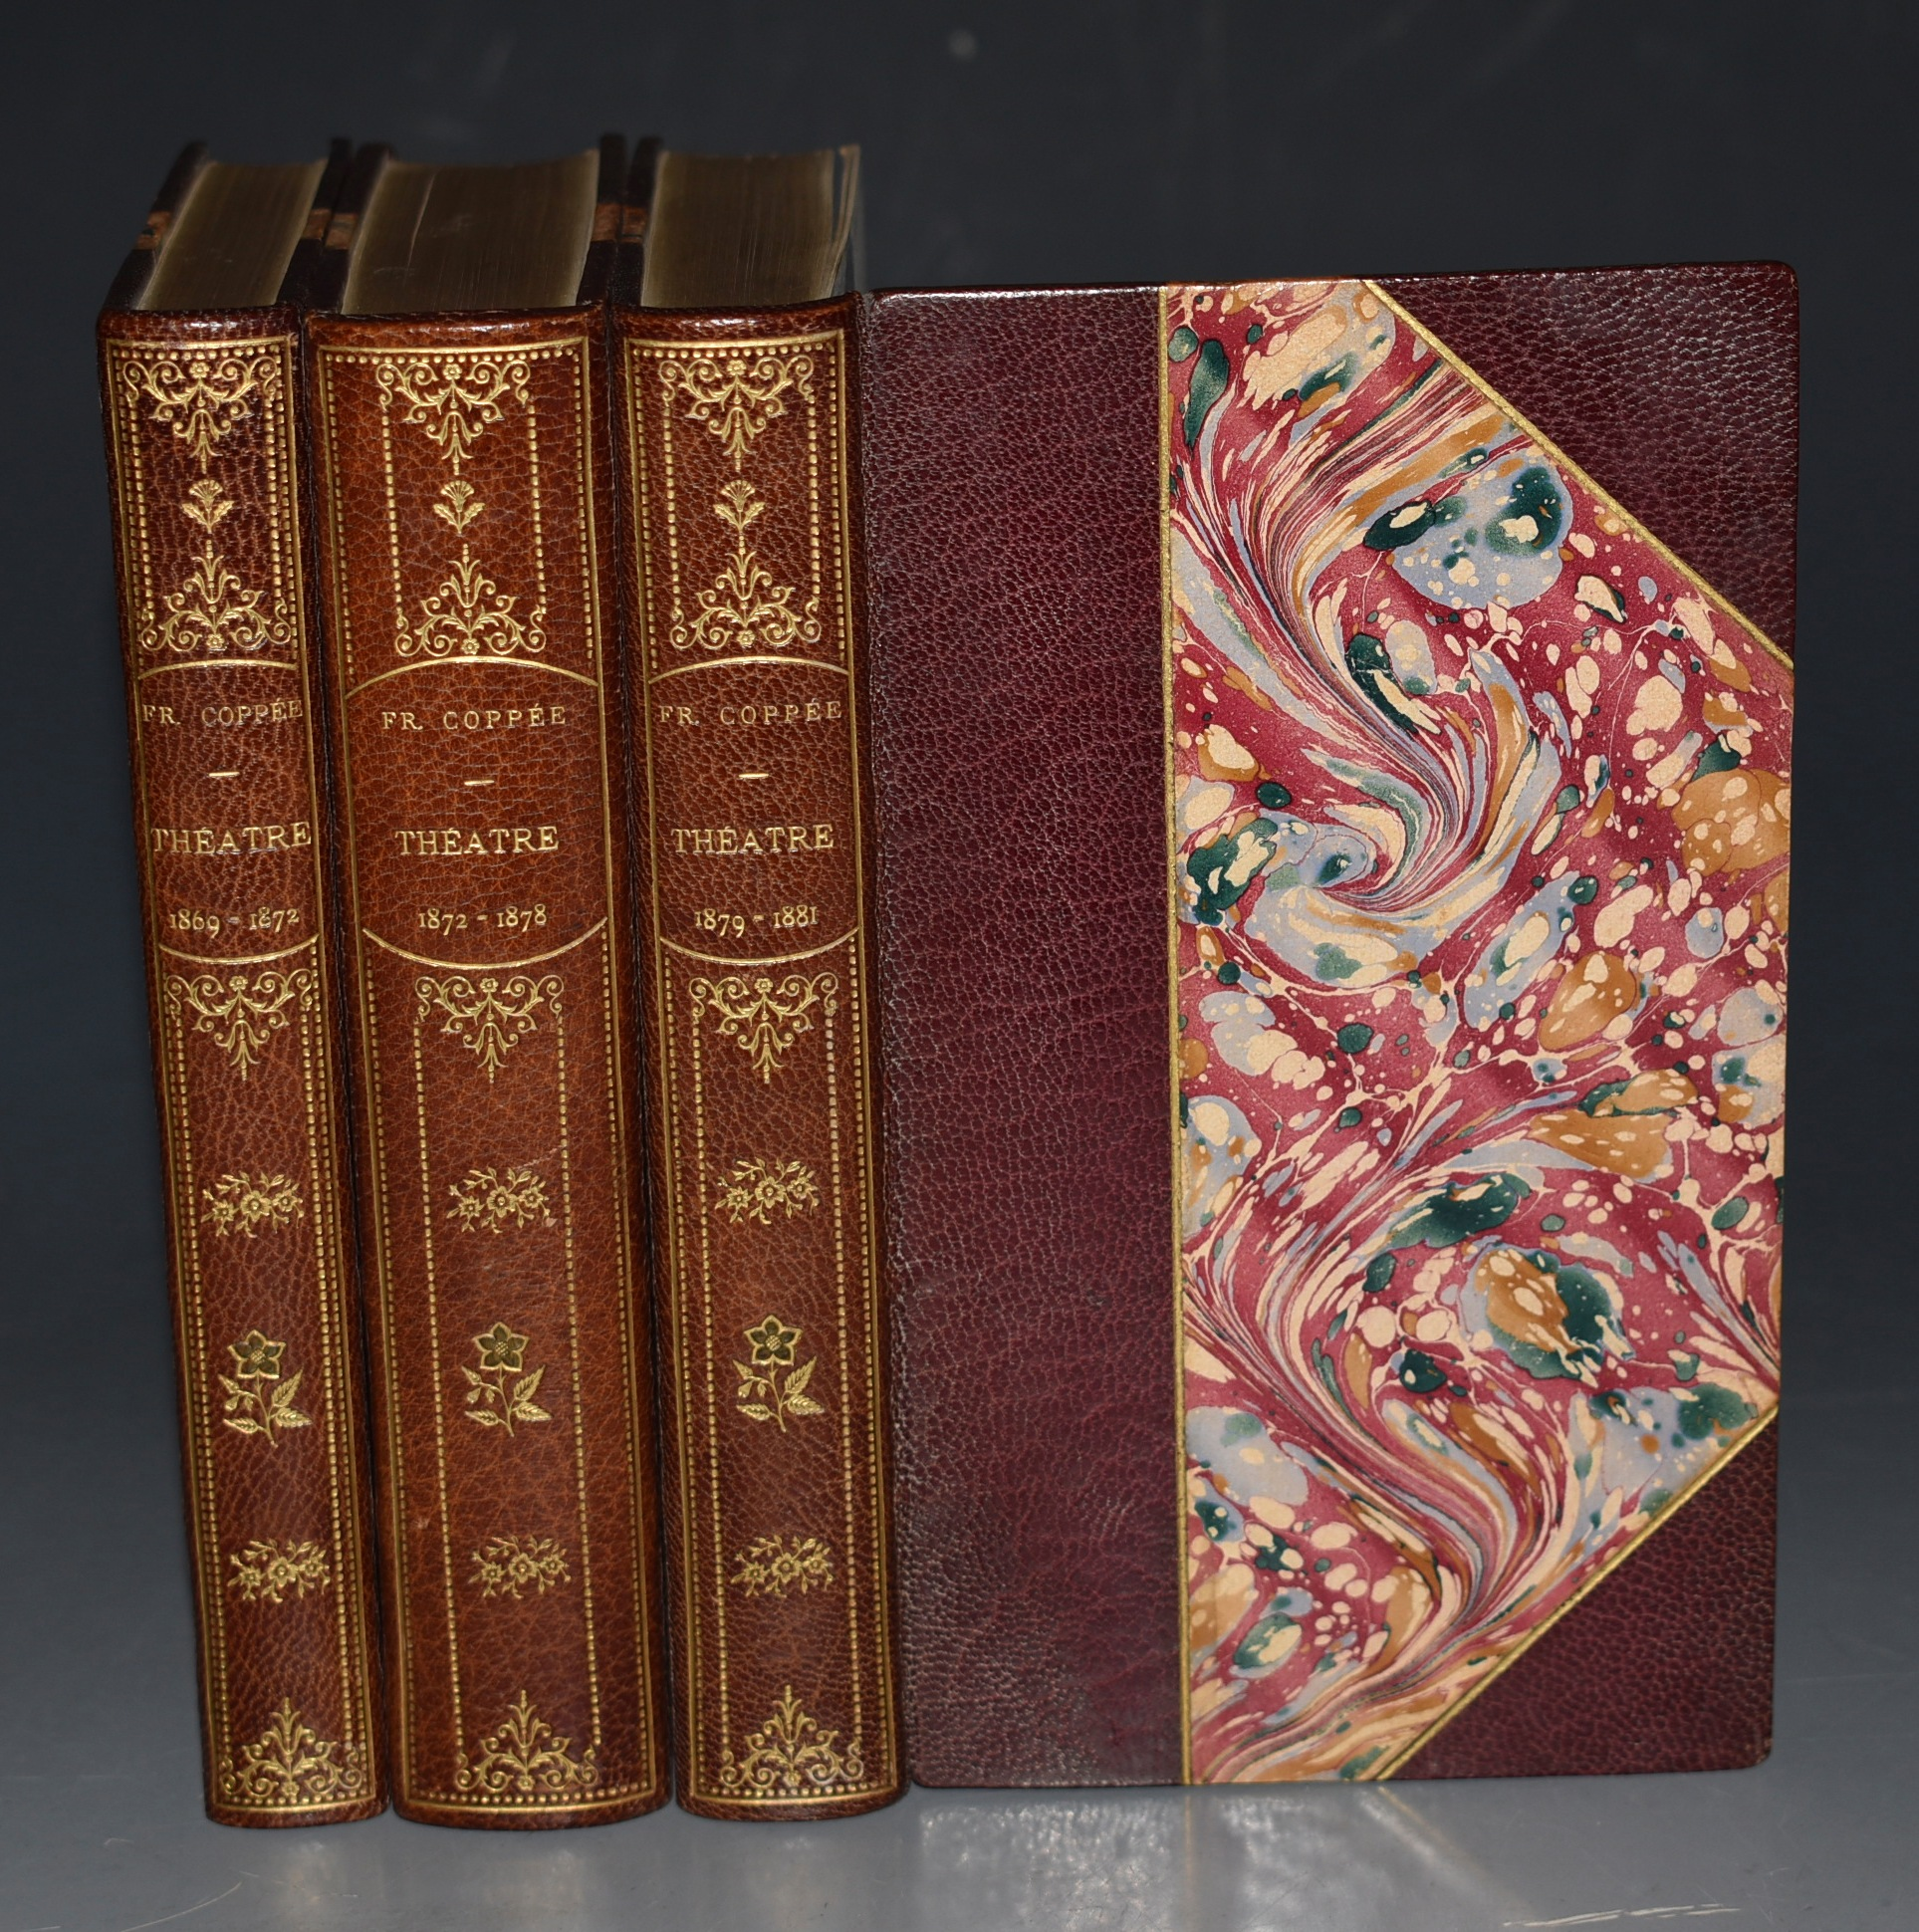 Image for Theatre de Francis Coppee. 1864-1869, 1869-1874, 1874-1878. In Three Volumes.